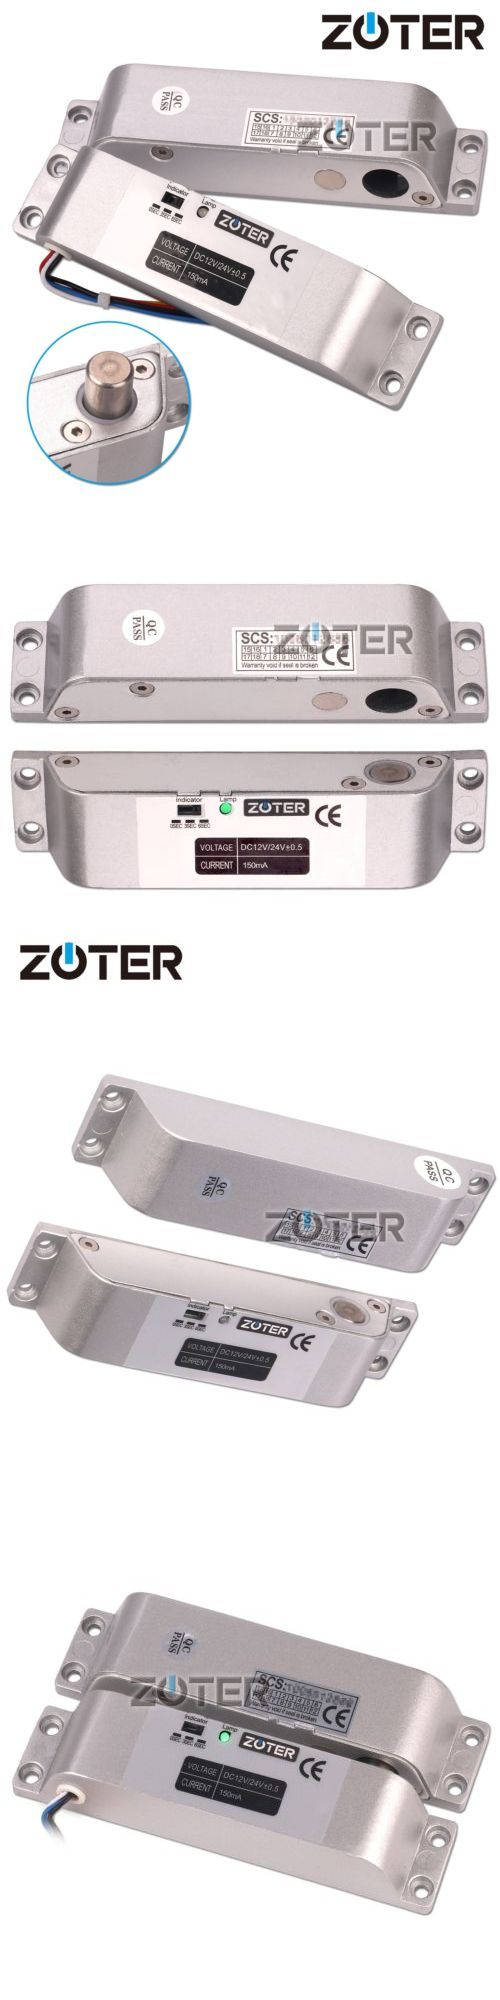 Other Home Automation: Zoter Electric Bolt Door Lock Surface Mounted Deadbolt Dc 12V Fail Safe Nc Mode -> BUY IT NOW ONLY: $35.49 on eBay!